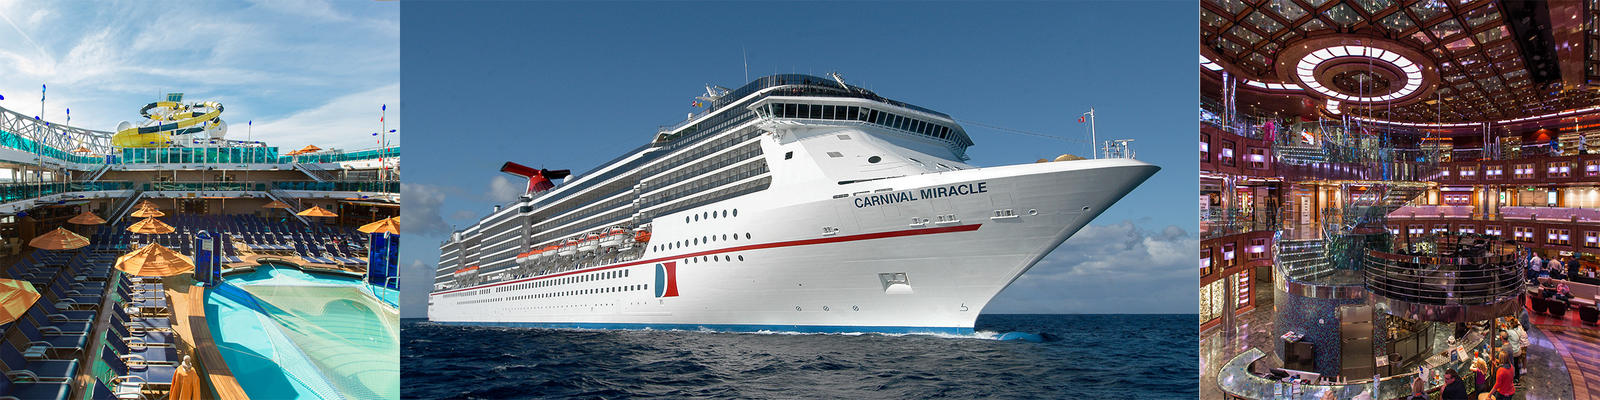 Carnival Miracle Cruise Ship Review Amp Photos On Cruise Critic